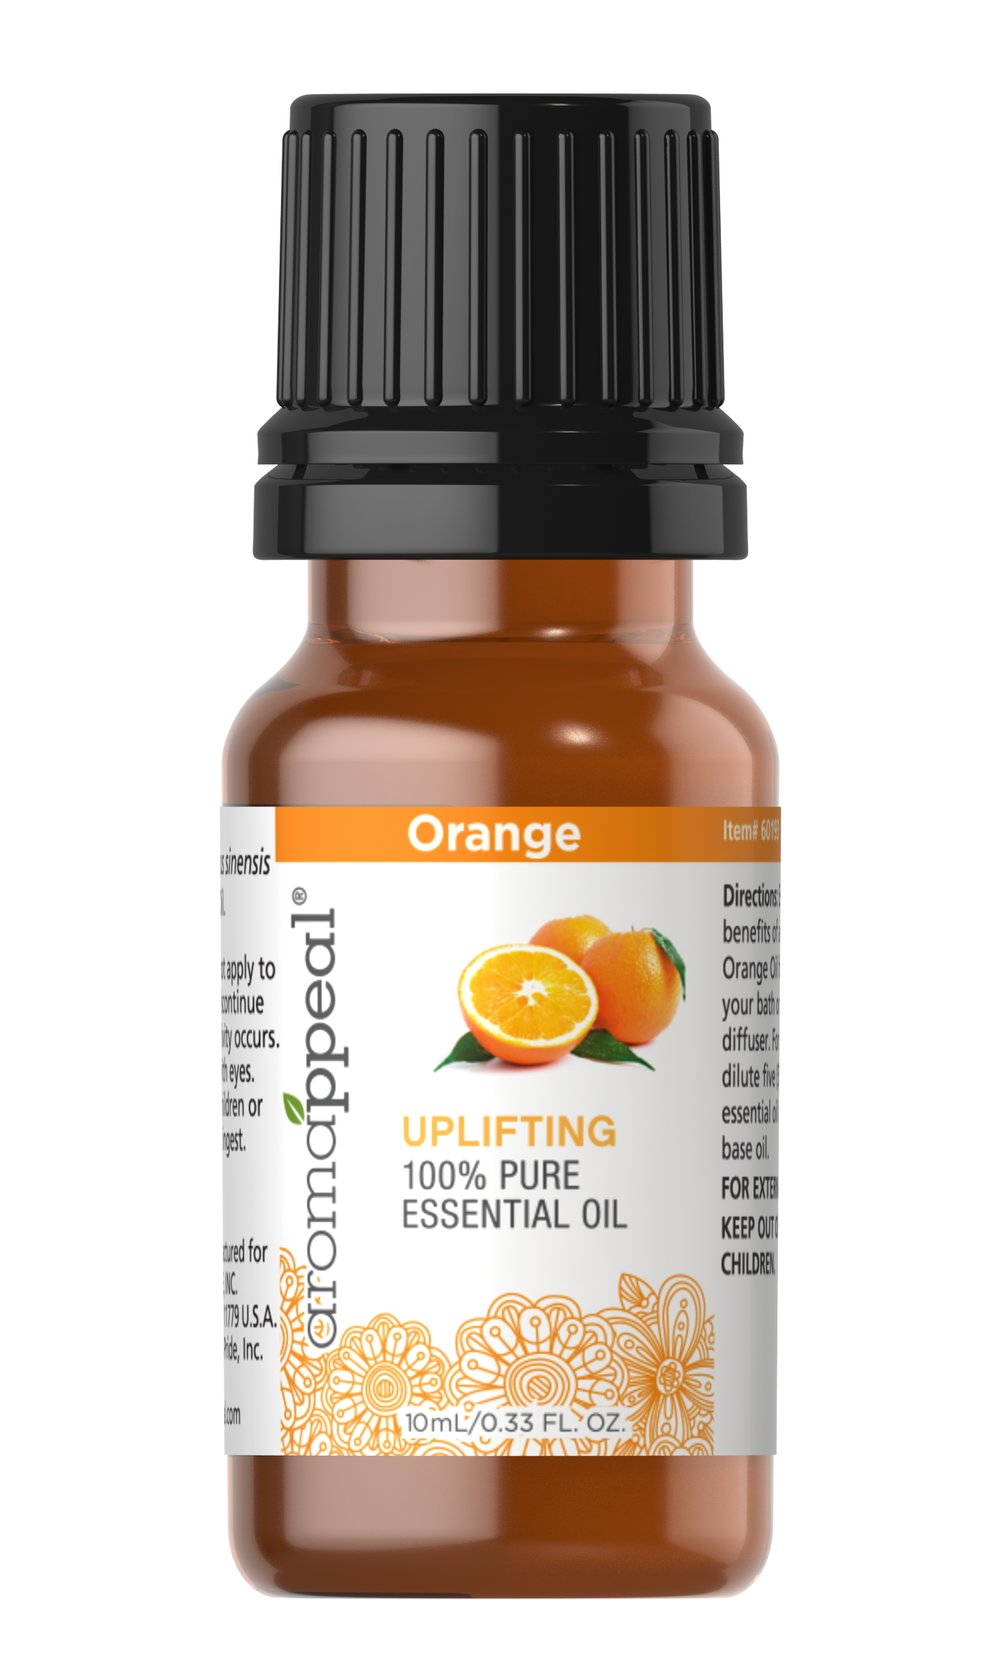 "Orange 100% Pure Essential Oil <p>Rejuvenating and scrumptious especially when rubbed on the temples. One of the most refreshing and uplifting of oils. Supports digestion, circulation, skin soothing, neurotonic for overall brain and nervous system health.</p><ul><li><span class=""bold-pink"">Traditional Uses:</span> Rejuvenating especially when rubbed on the temples, refreshing,  uplifting, digestion, circulation, skin soothing, neurotonic for overall"